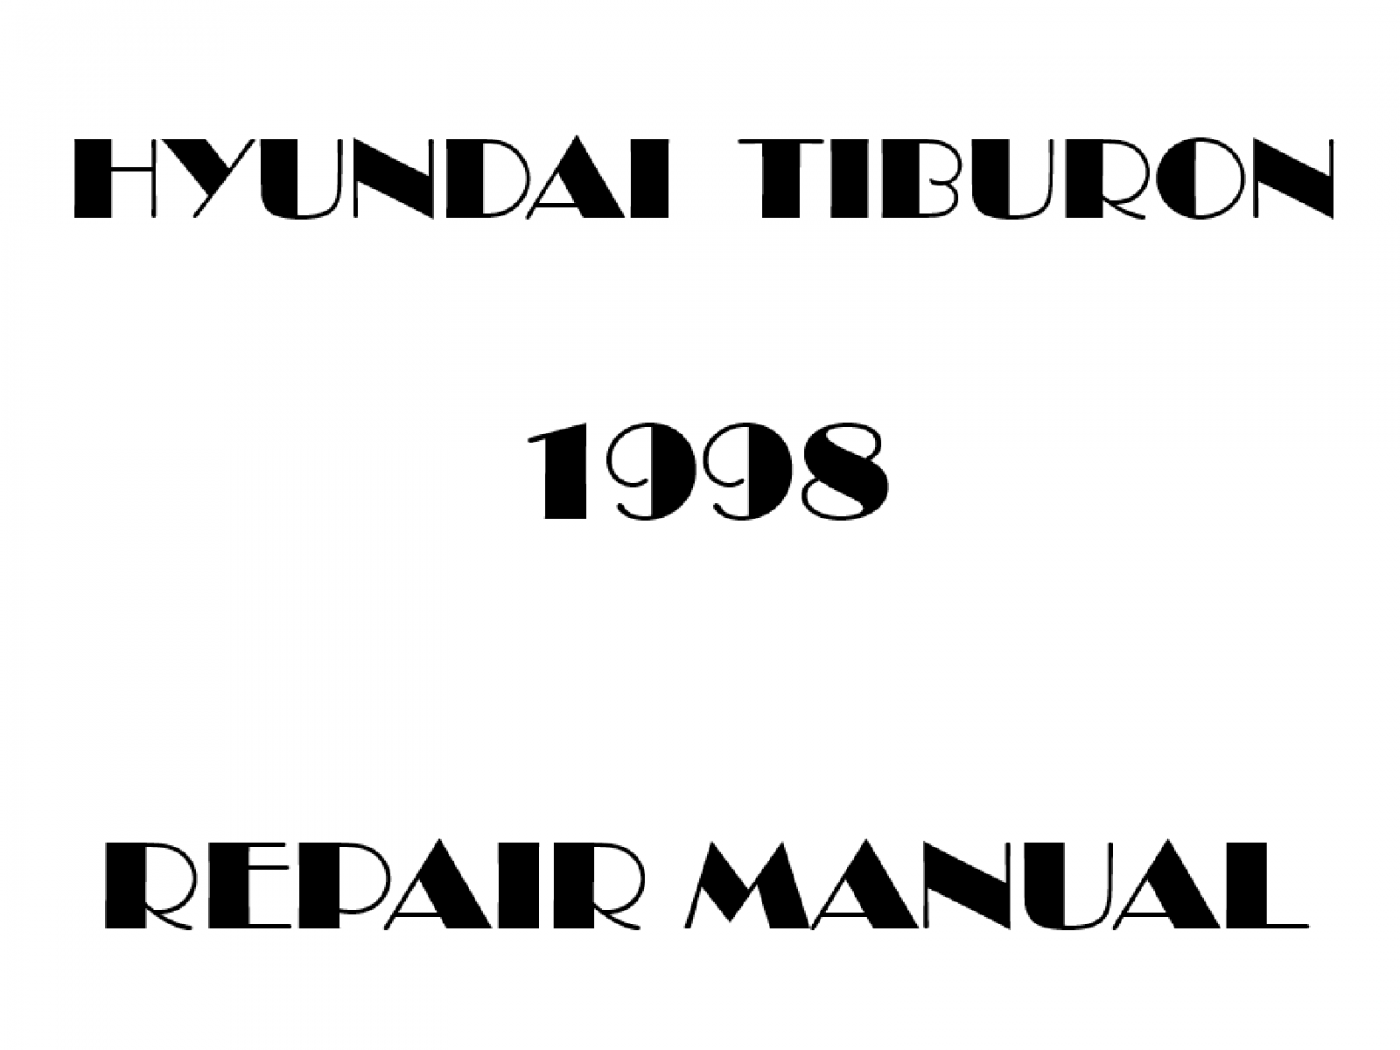 1998 Hyundai Tiburon repair manual